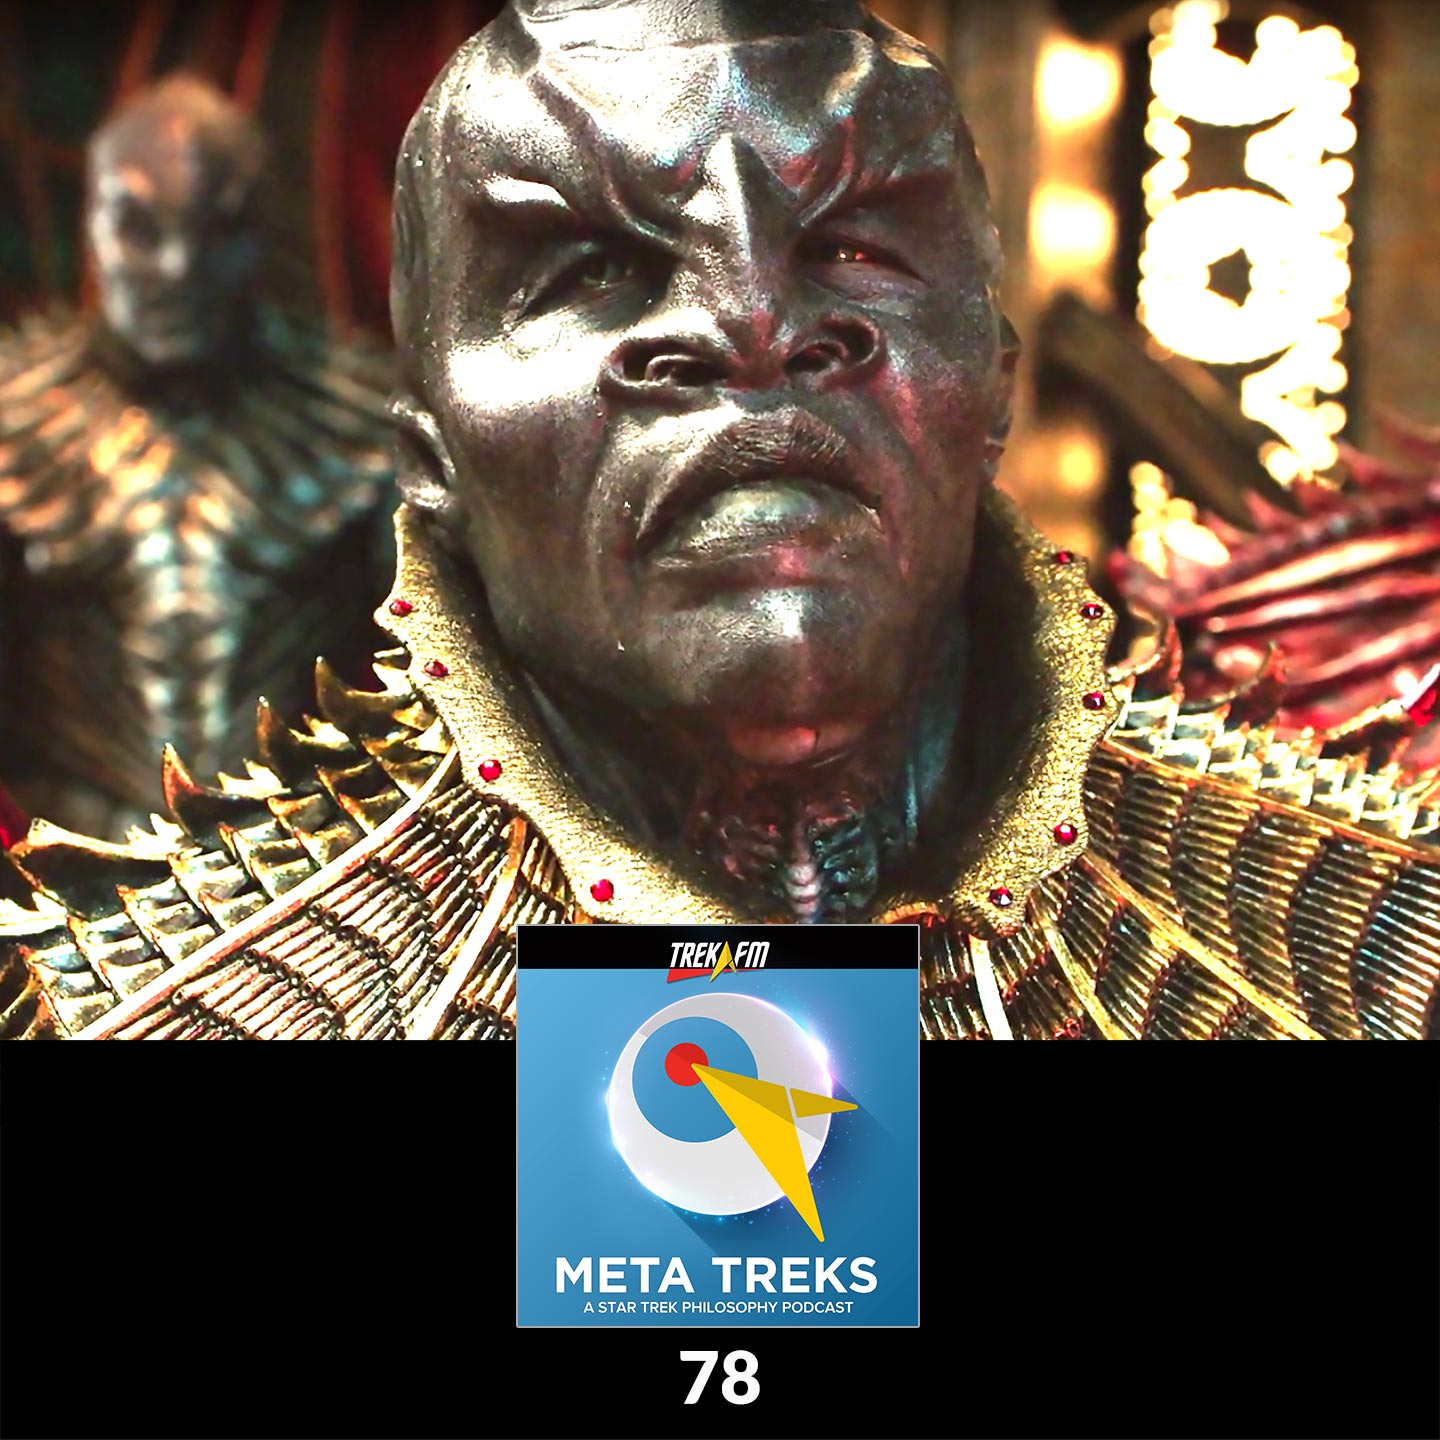 Meta Treks 78: How Do You Say 'Wall' in Klingon? - Philosophical Themes in Star Trek: Discovery, Episodes 1 and 2.